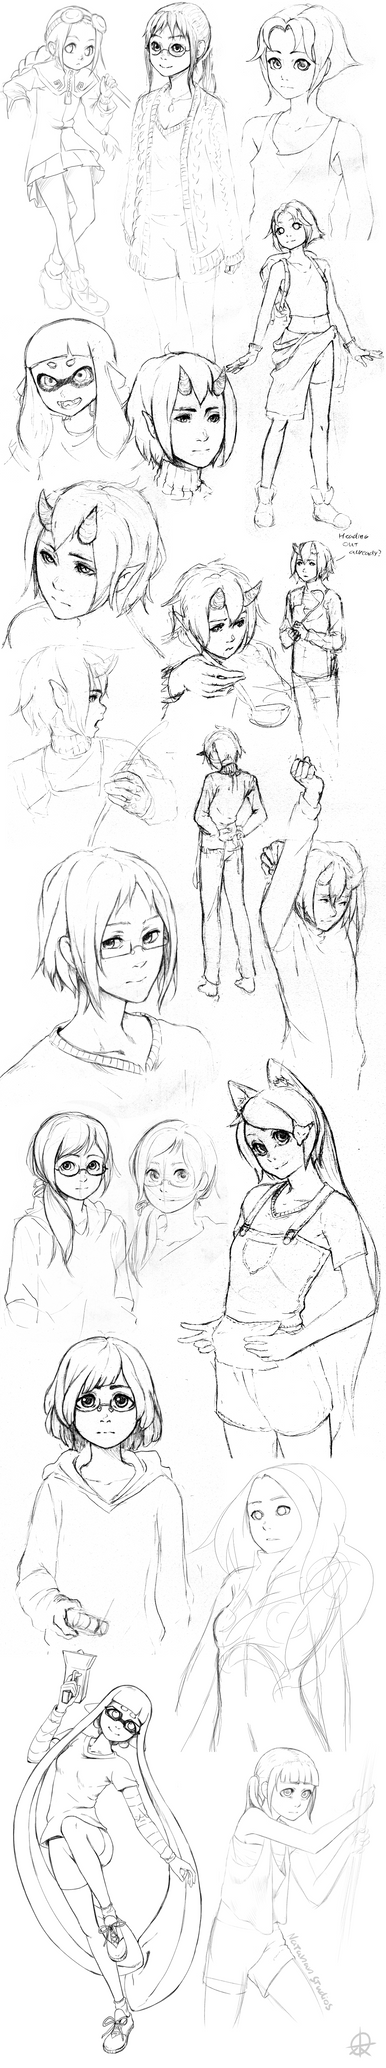 Sketch Dump 14 by NatahanStudios